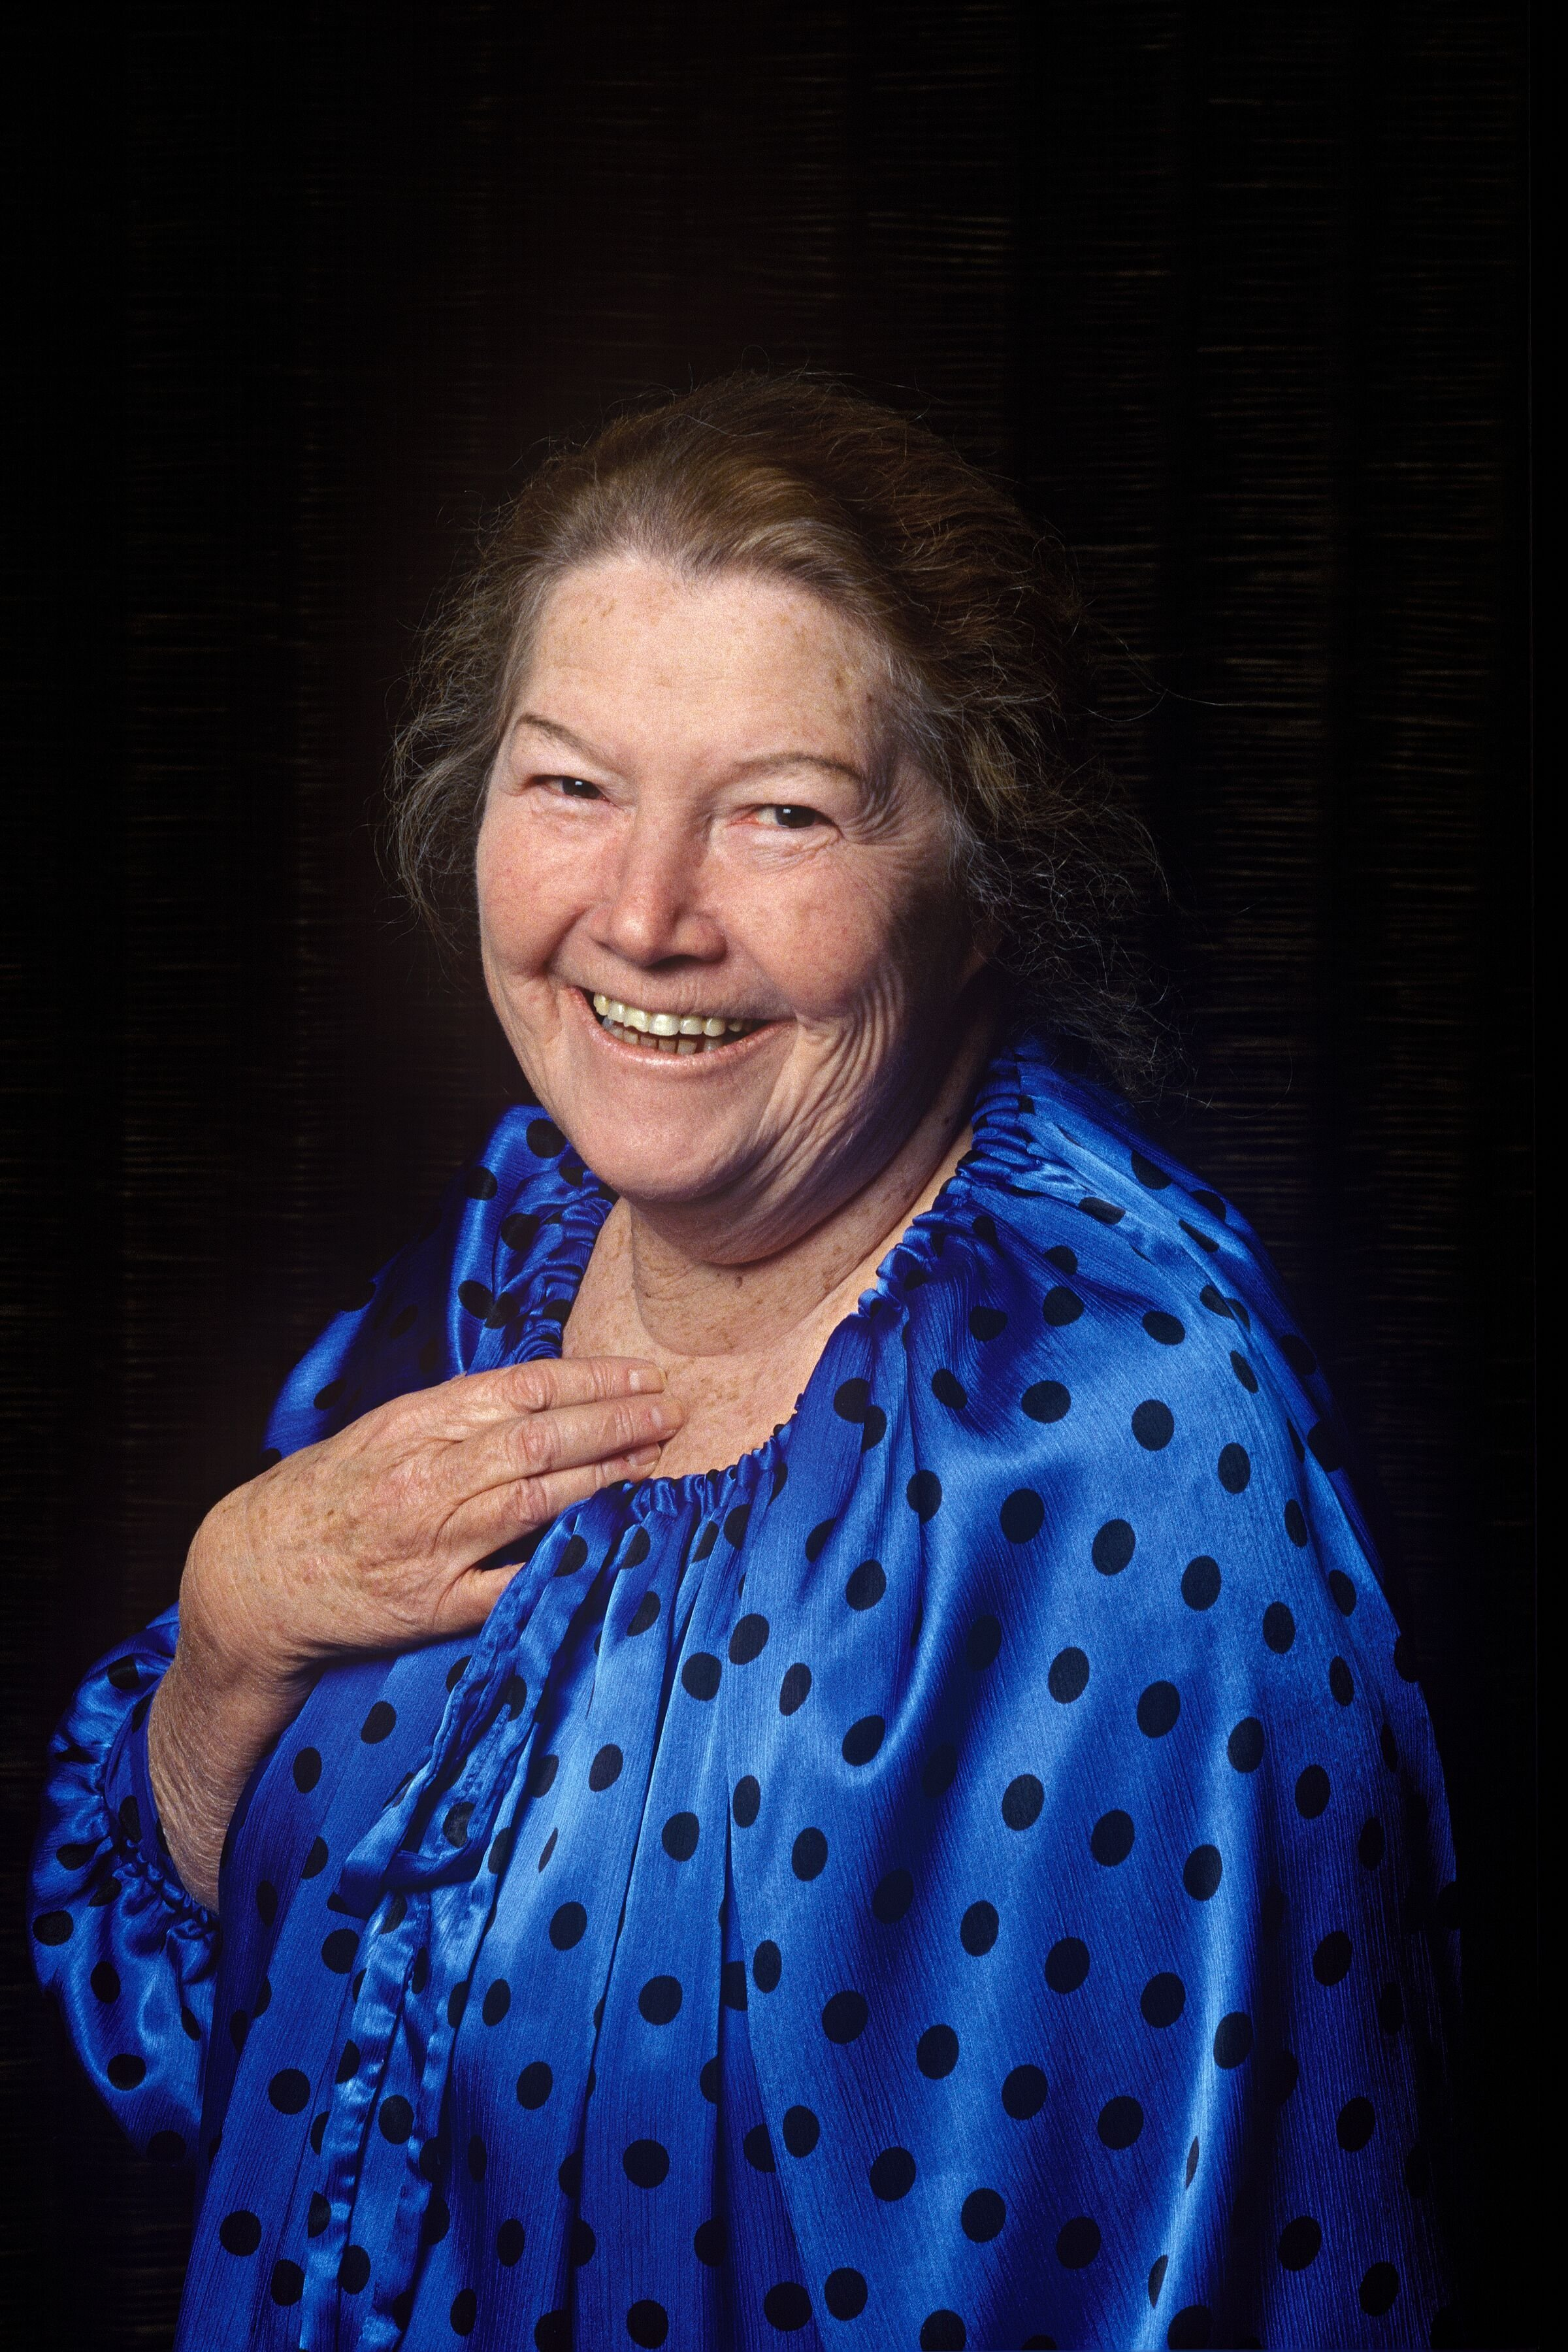 Colleen McCullough / Source : Getty Images